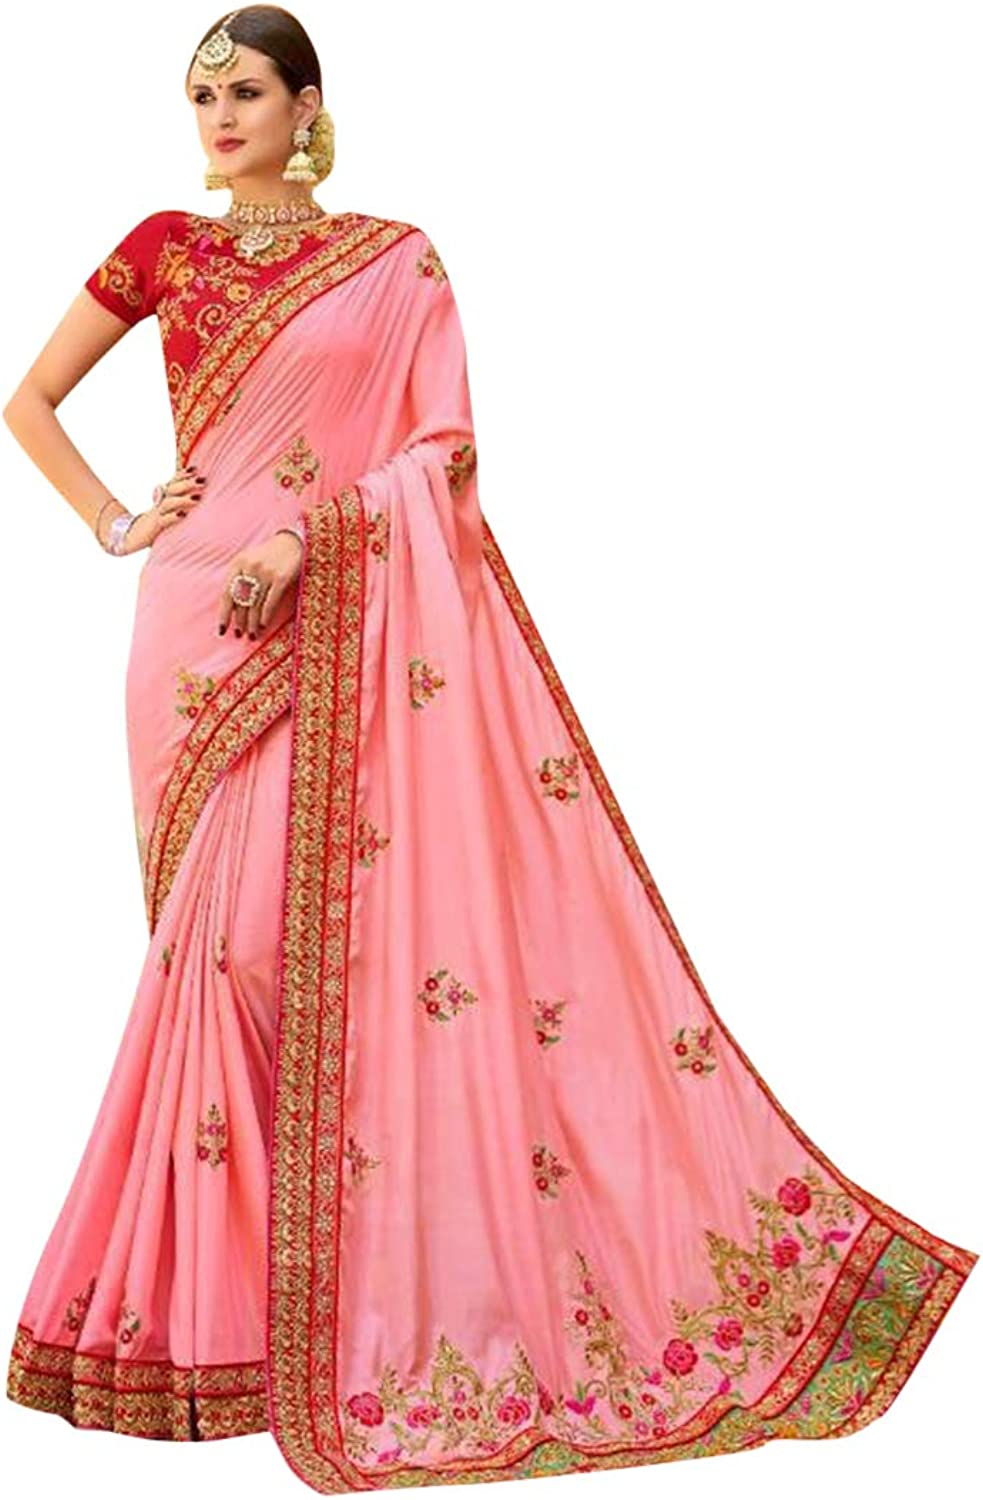 Party wear heavy pink saree with blouse wrap dress ethnic indian women wear 7376